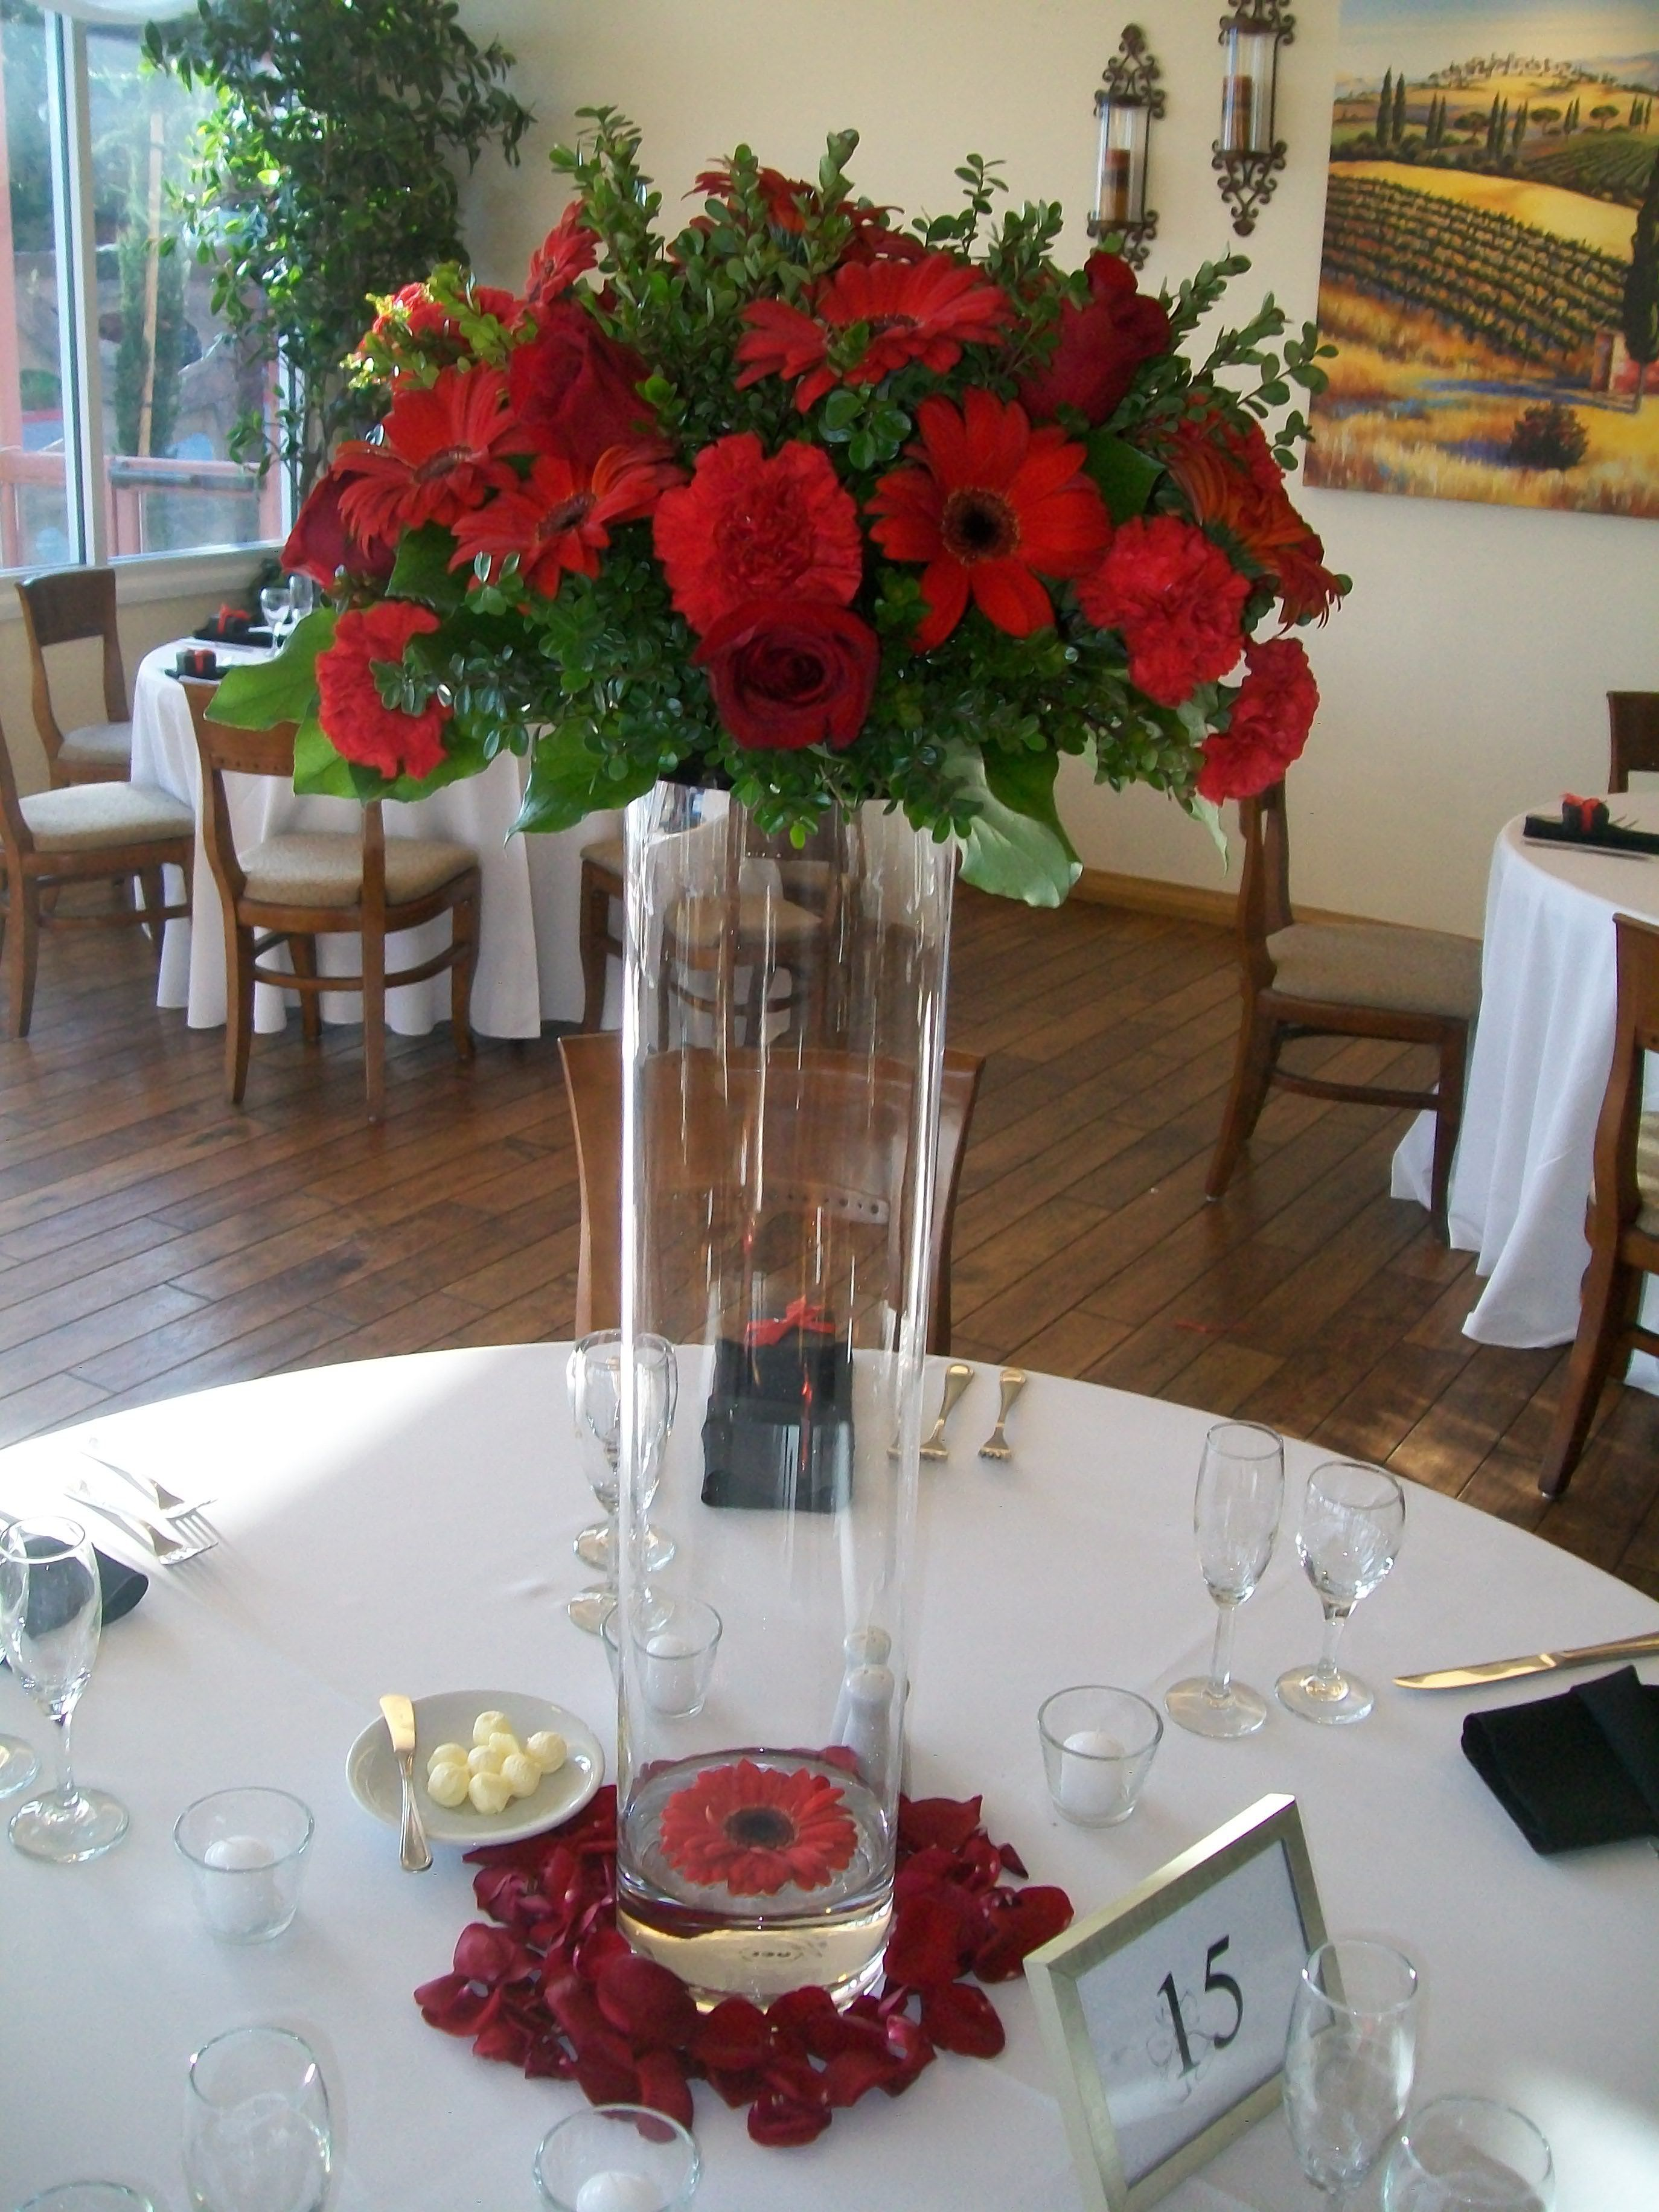 Tall Red Floral Centerpiece With A Floating Gerbera Daisy In